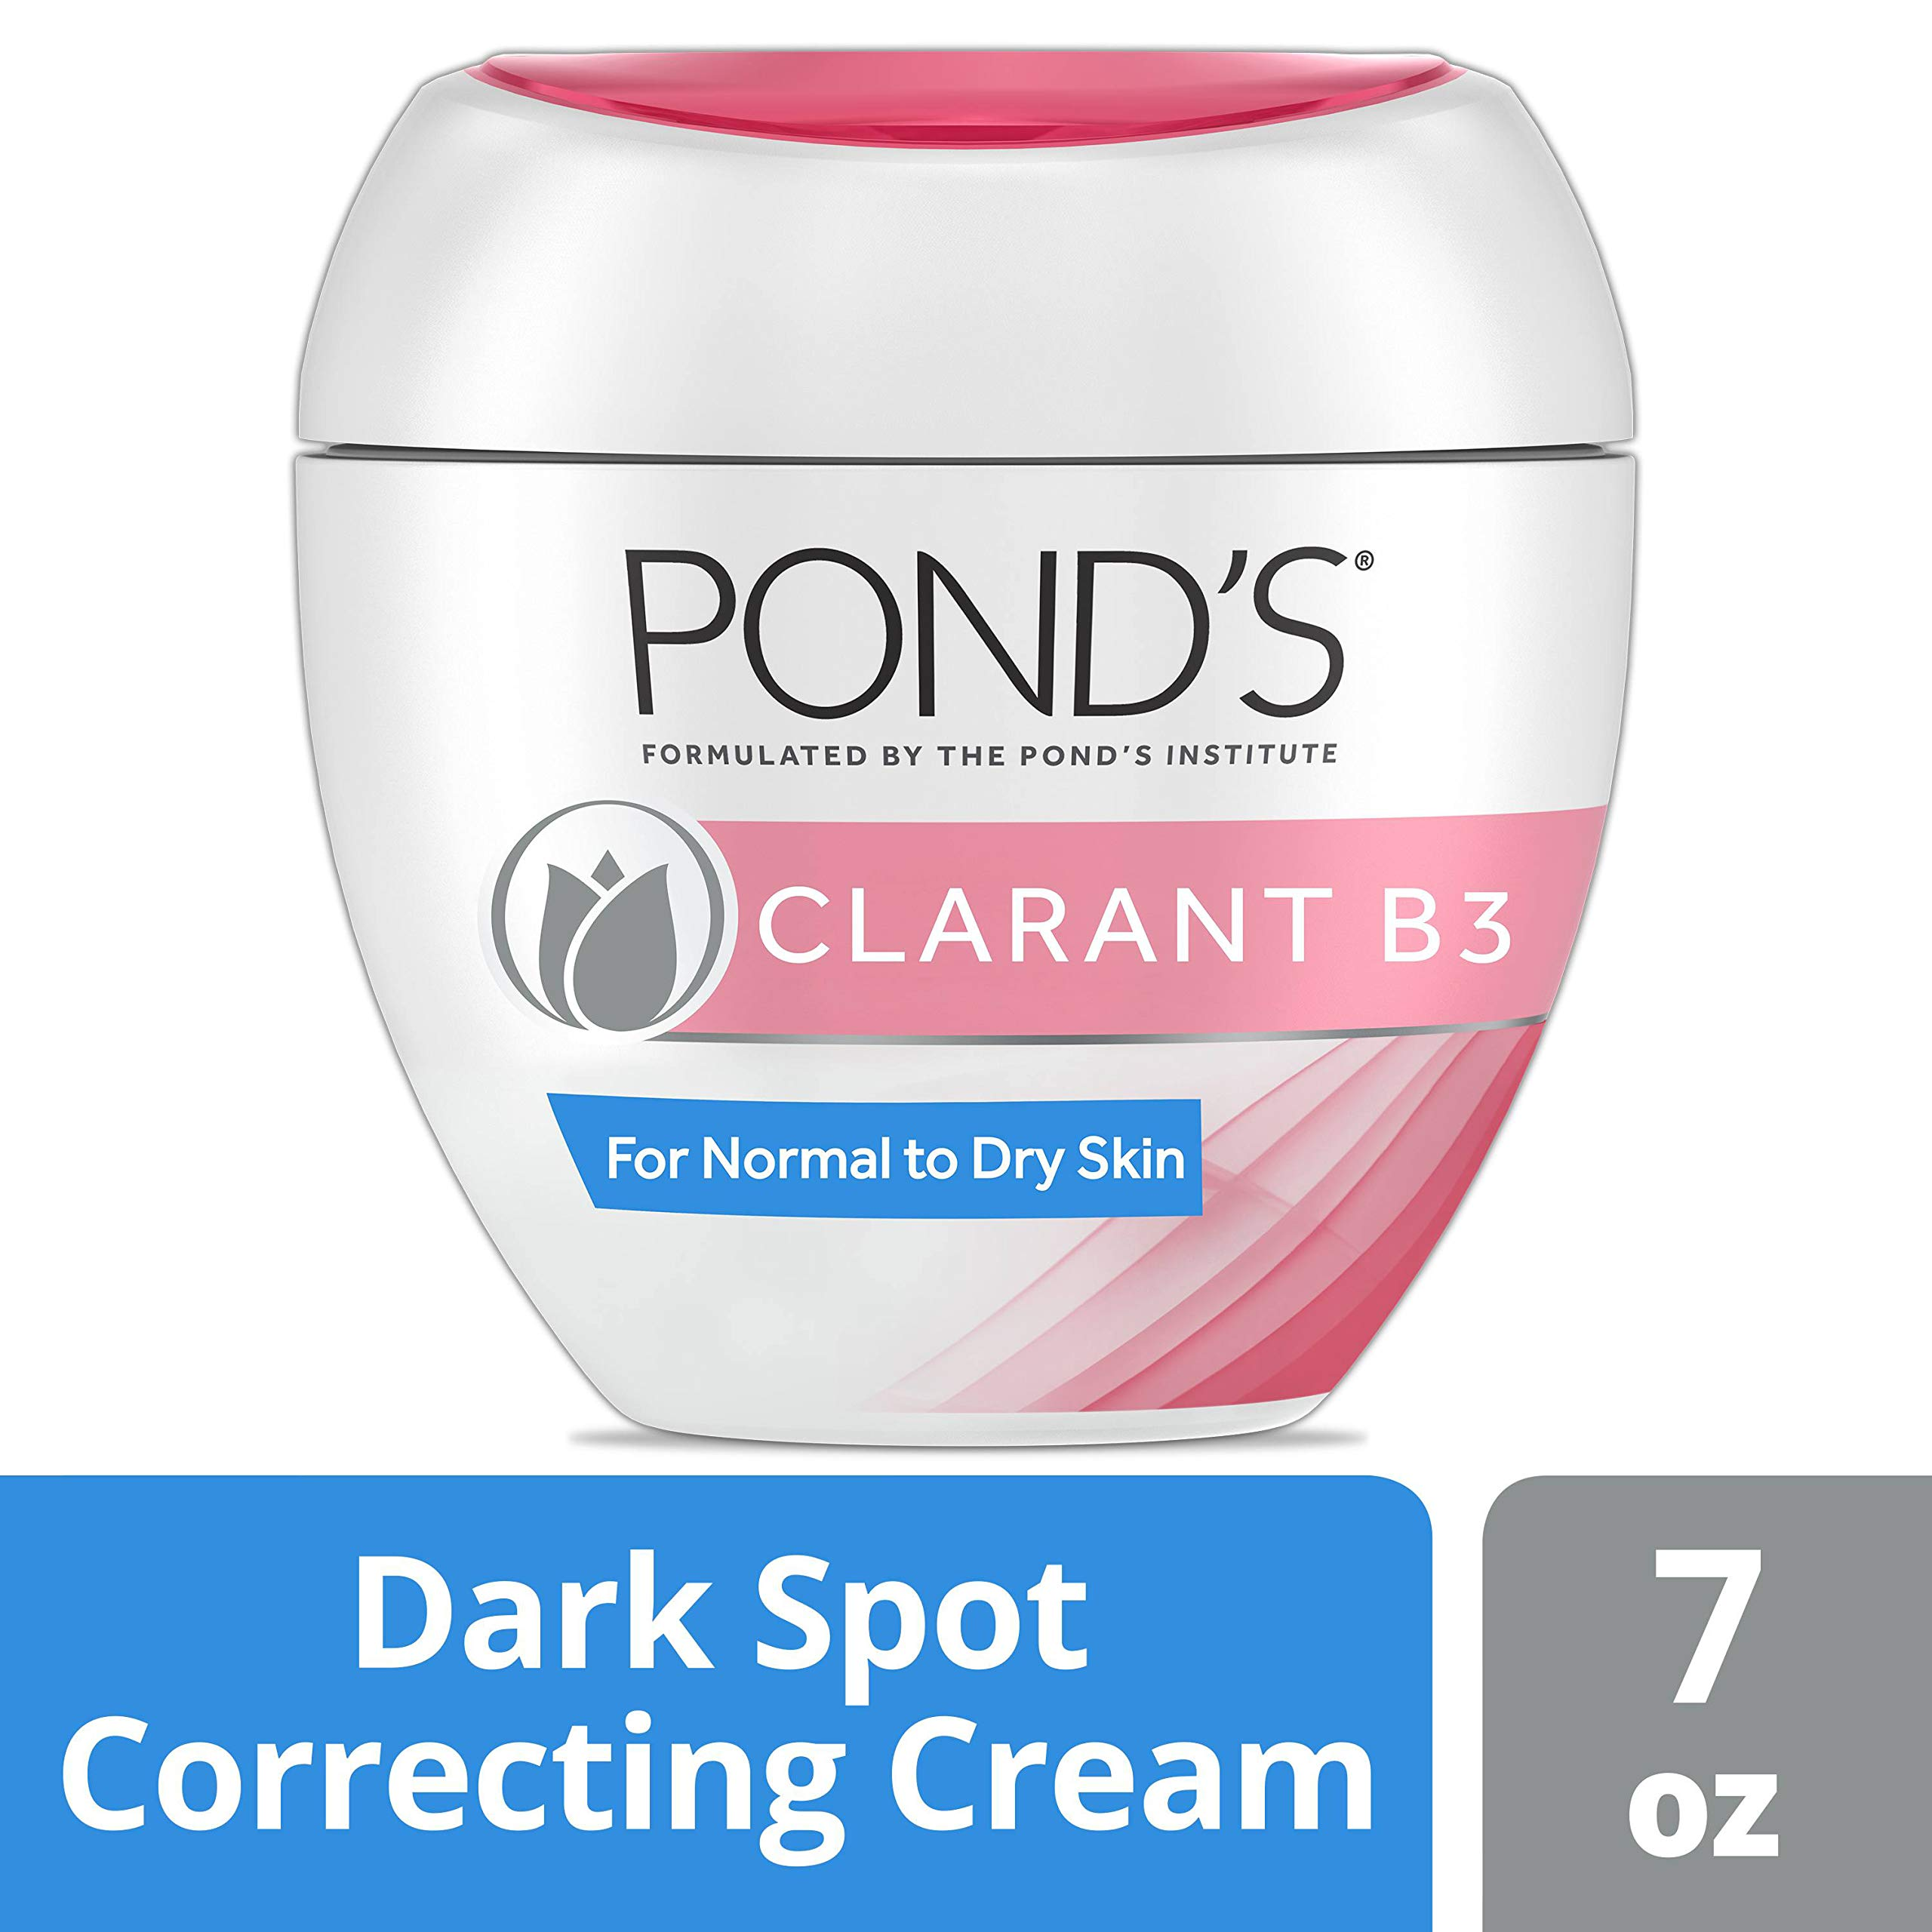 Ponds Dark Spot Corrector, Clarant B3 Normal to Dry Skin, 7 oz (Pack